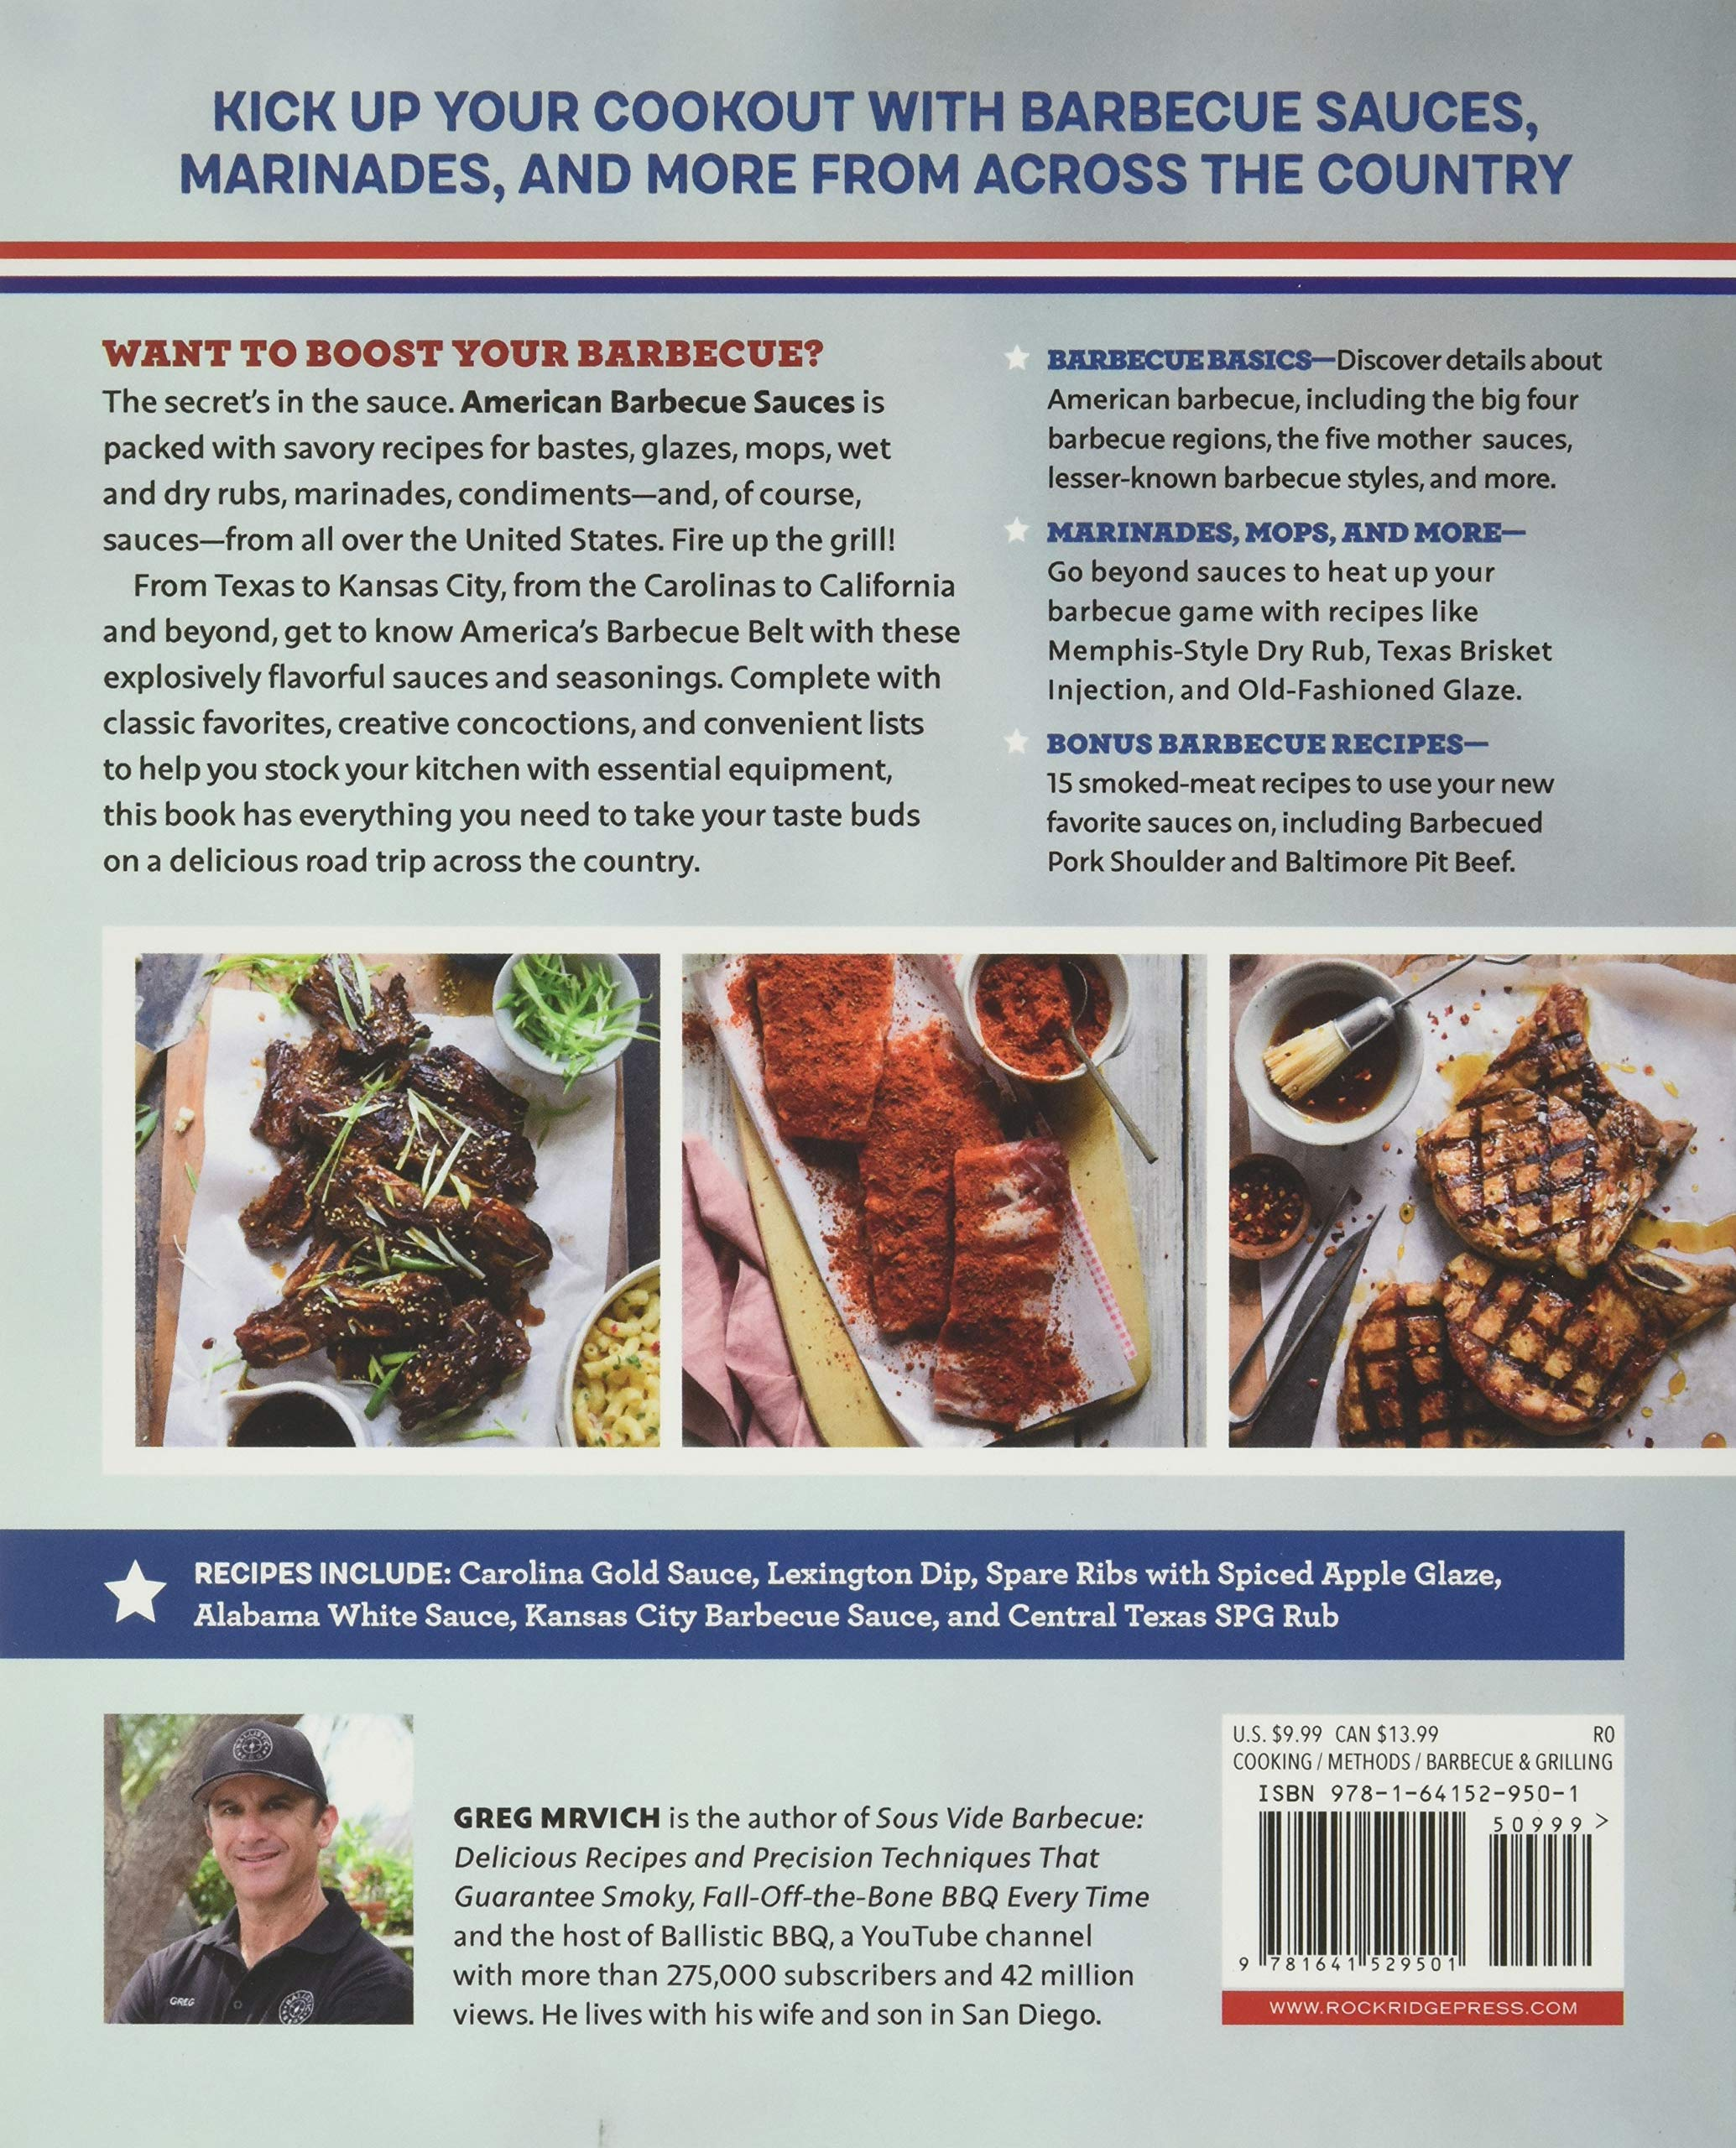 American Barbecue Sauces Marinades Rubs And More From The South And Beyond Amazon De Mrvich Greg Fremdsprachige Bucher